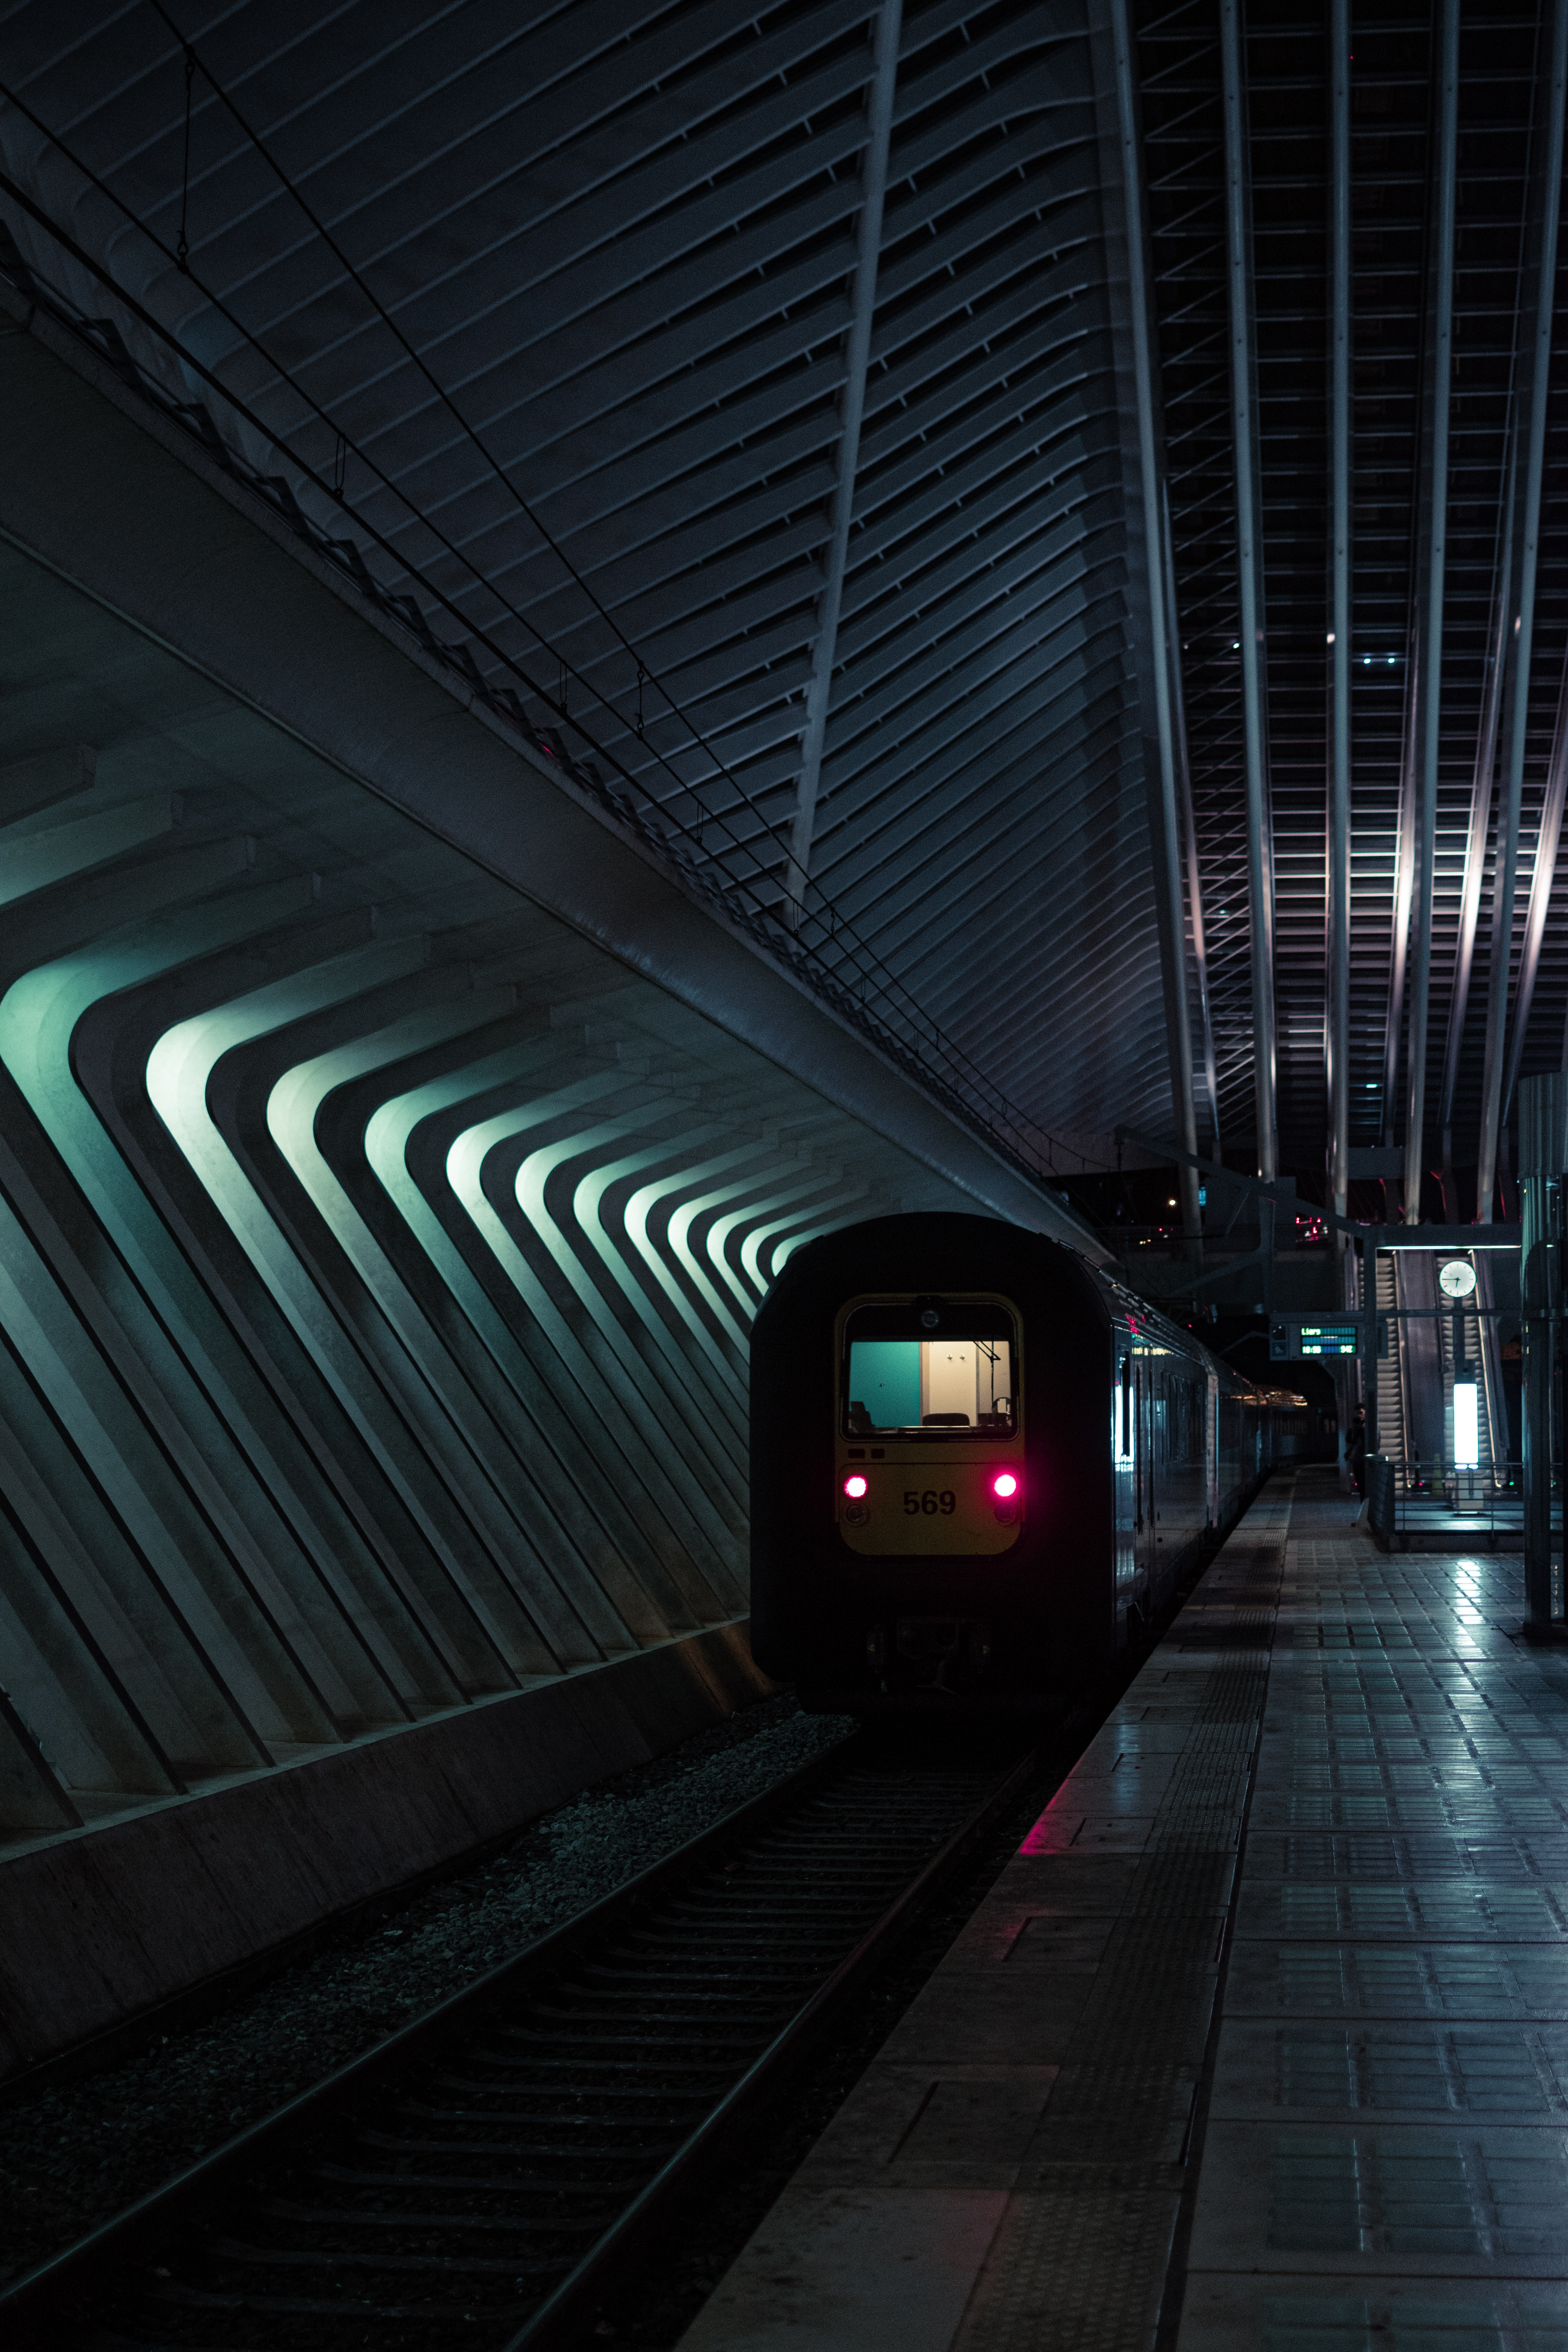 83329 Screensavers and Wallpapers Metro for phone. Download Dark, Car, Rails, Train, Metro, Subway, Railway Carriage pictures for free